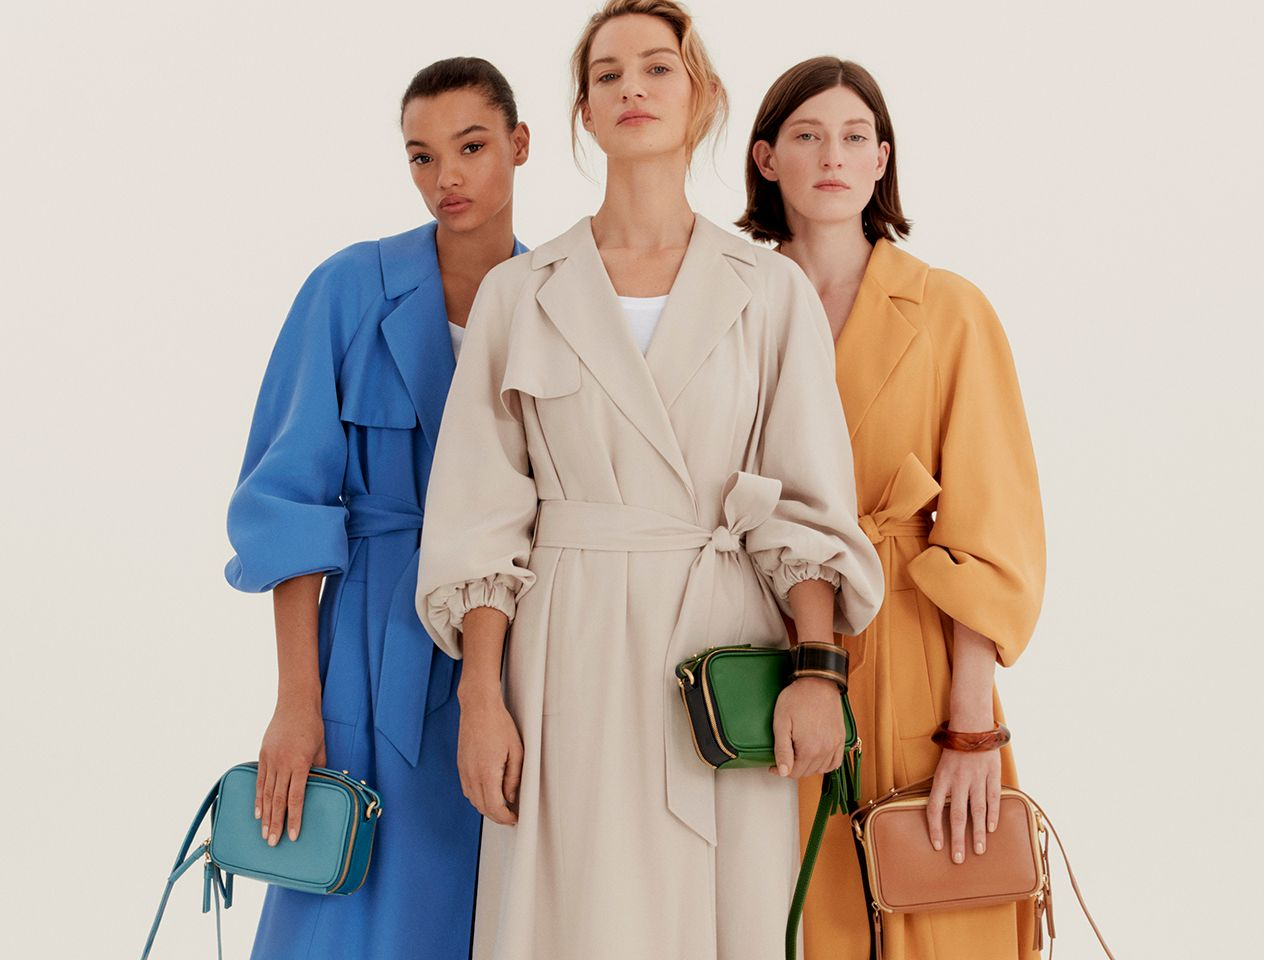 Models wearing blue, yellow and stone trench coats